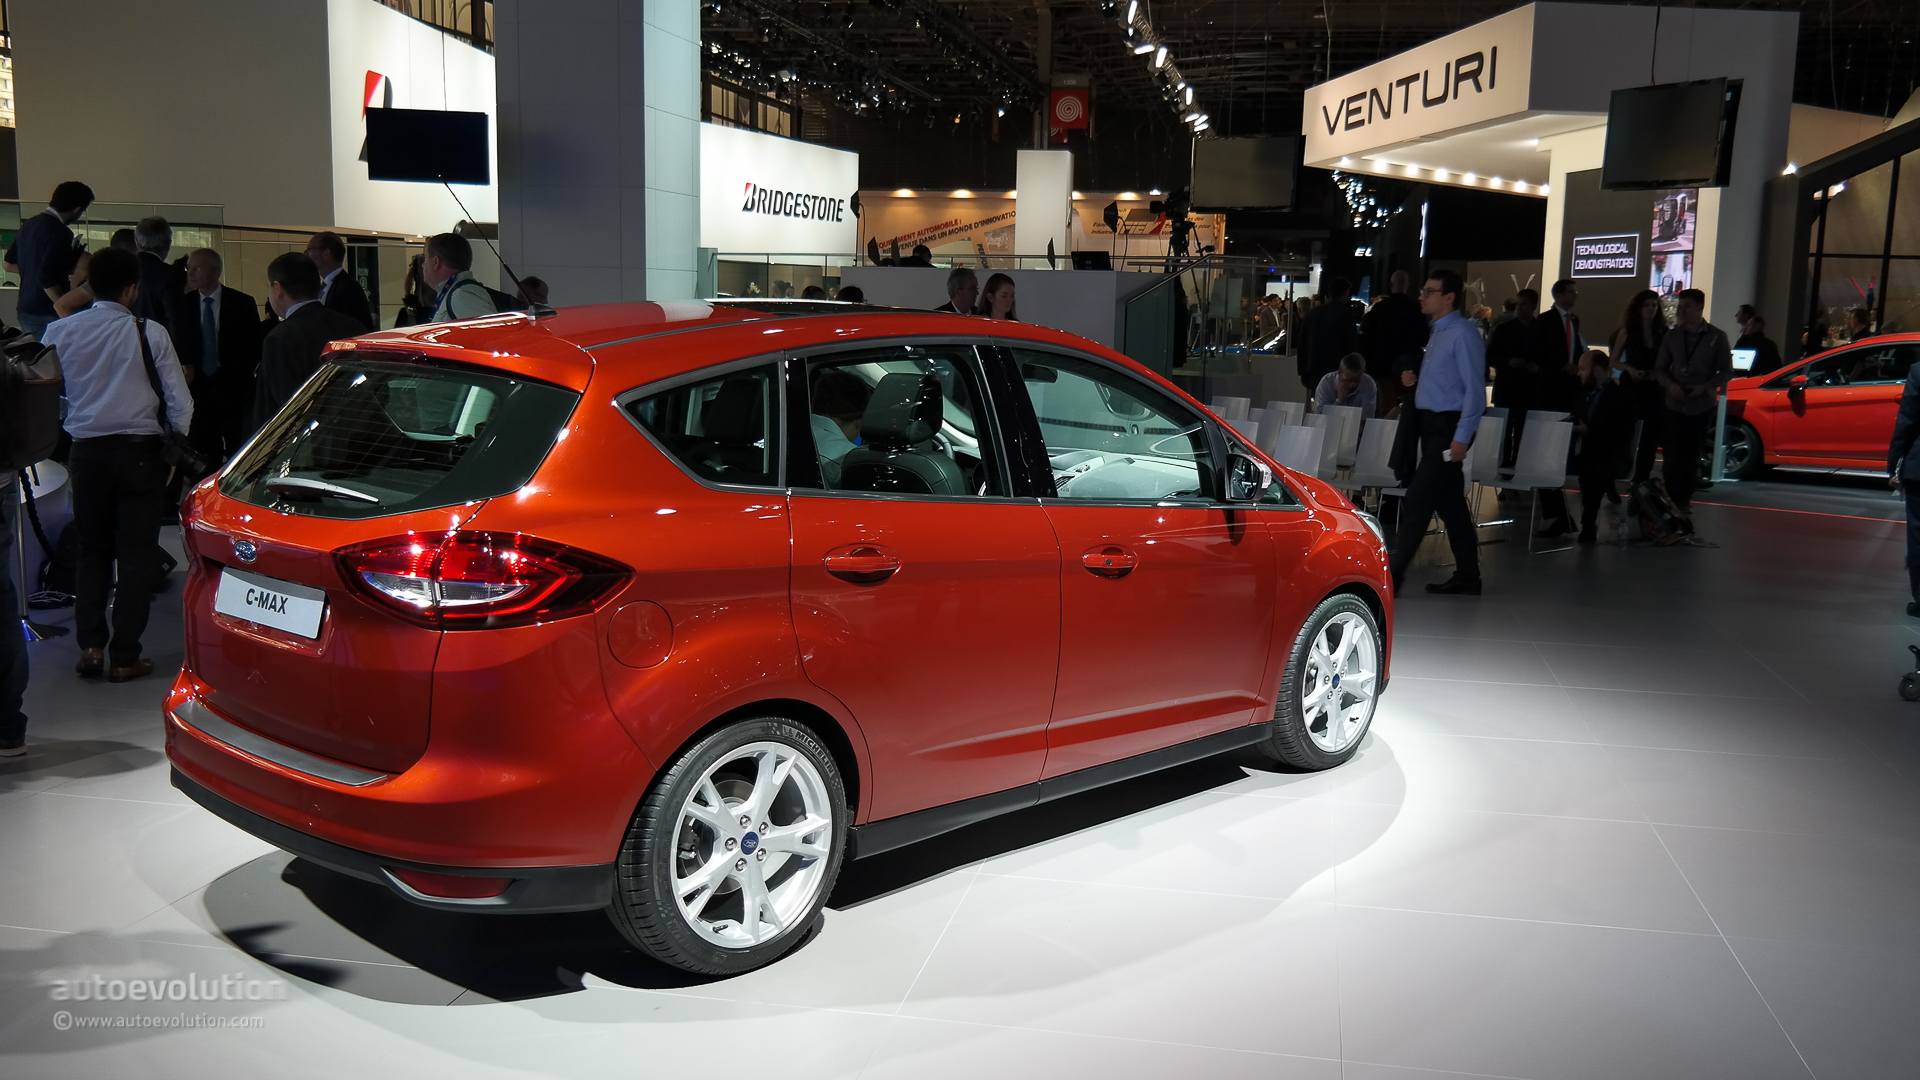 2015 ford c max facelift shows its new face at the paris motor show live photos autoevolution. Black Bedroom Furniture Sets. Home Design Ideas